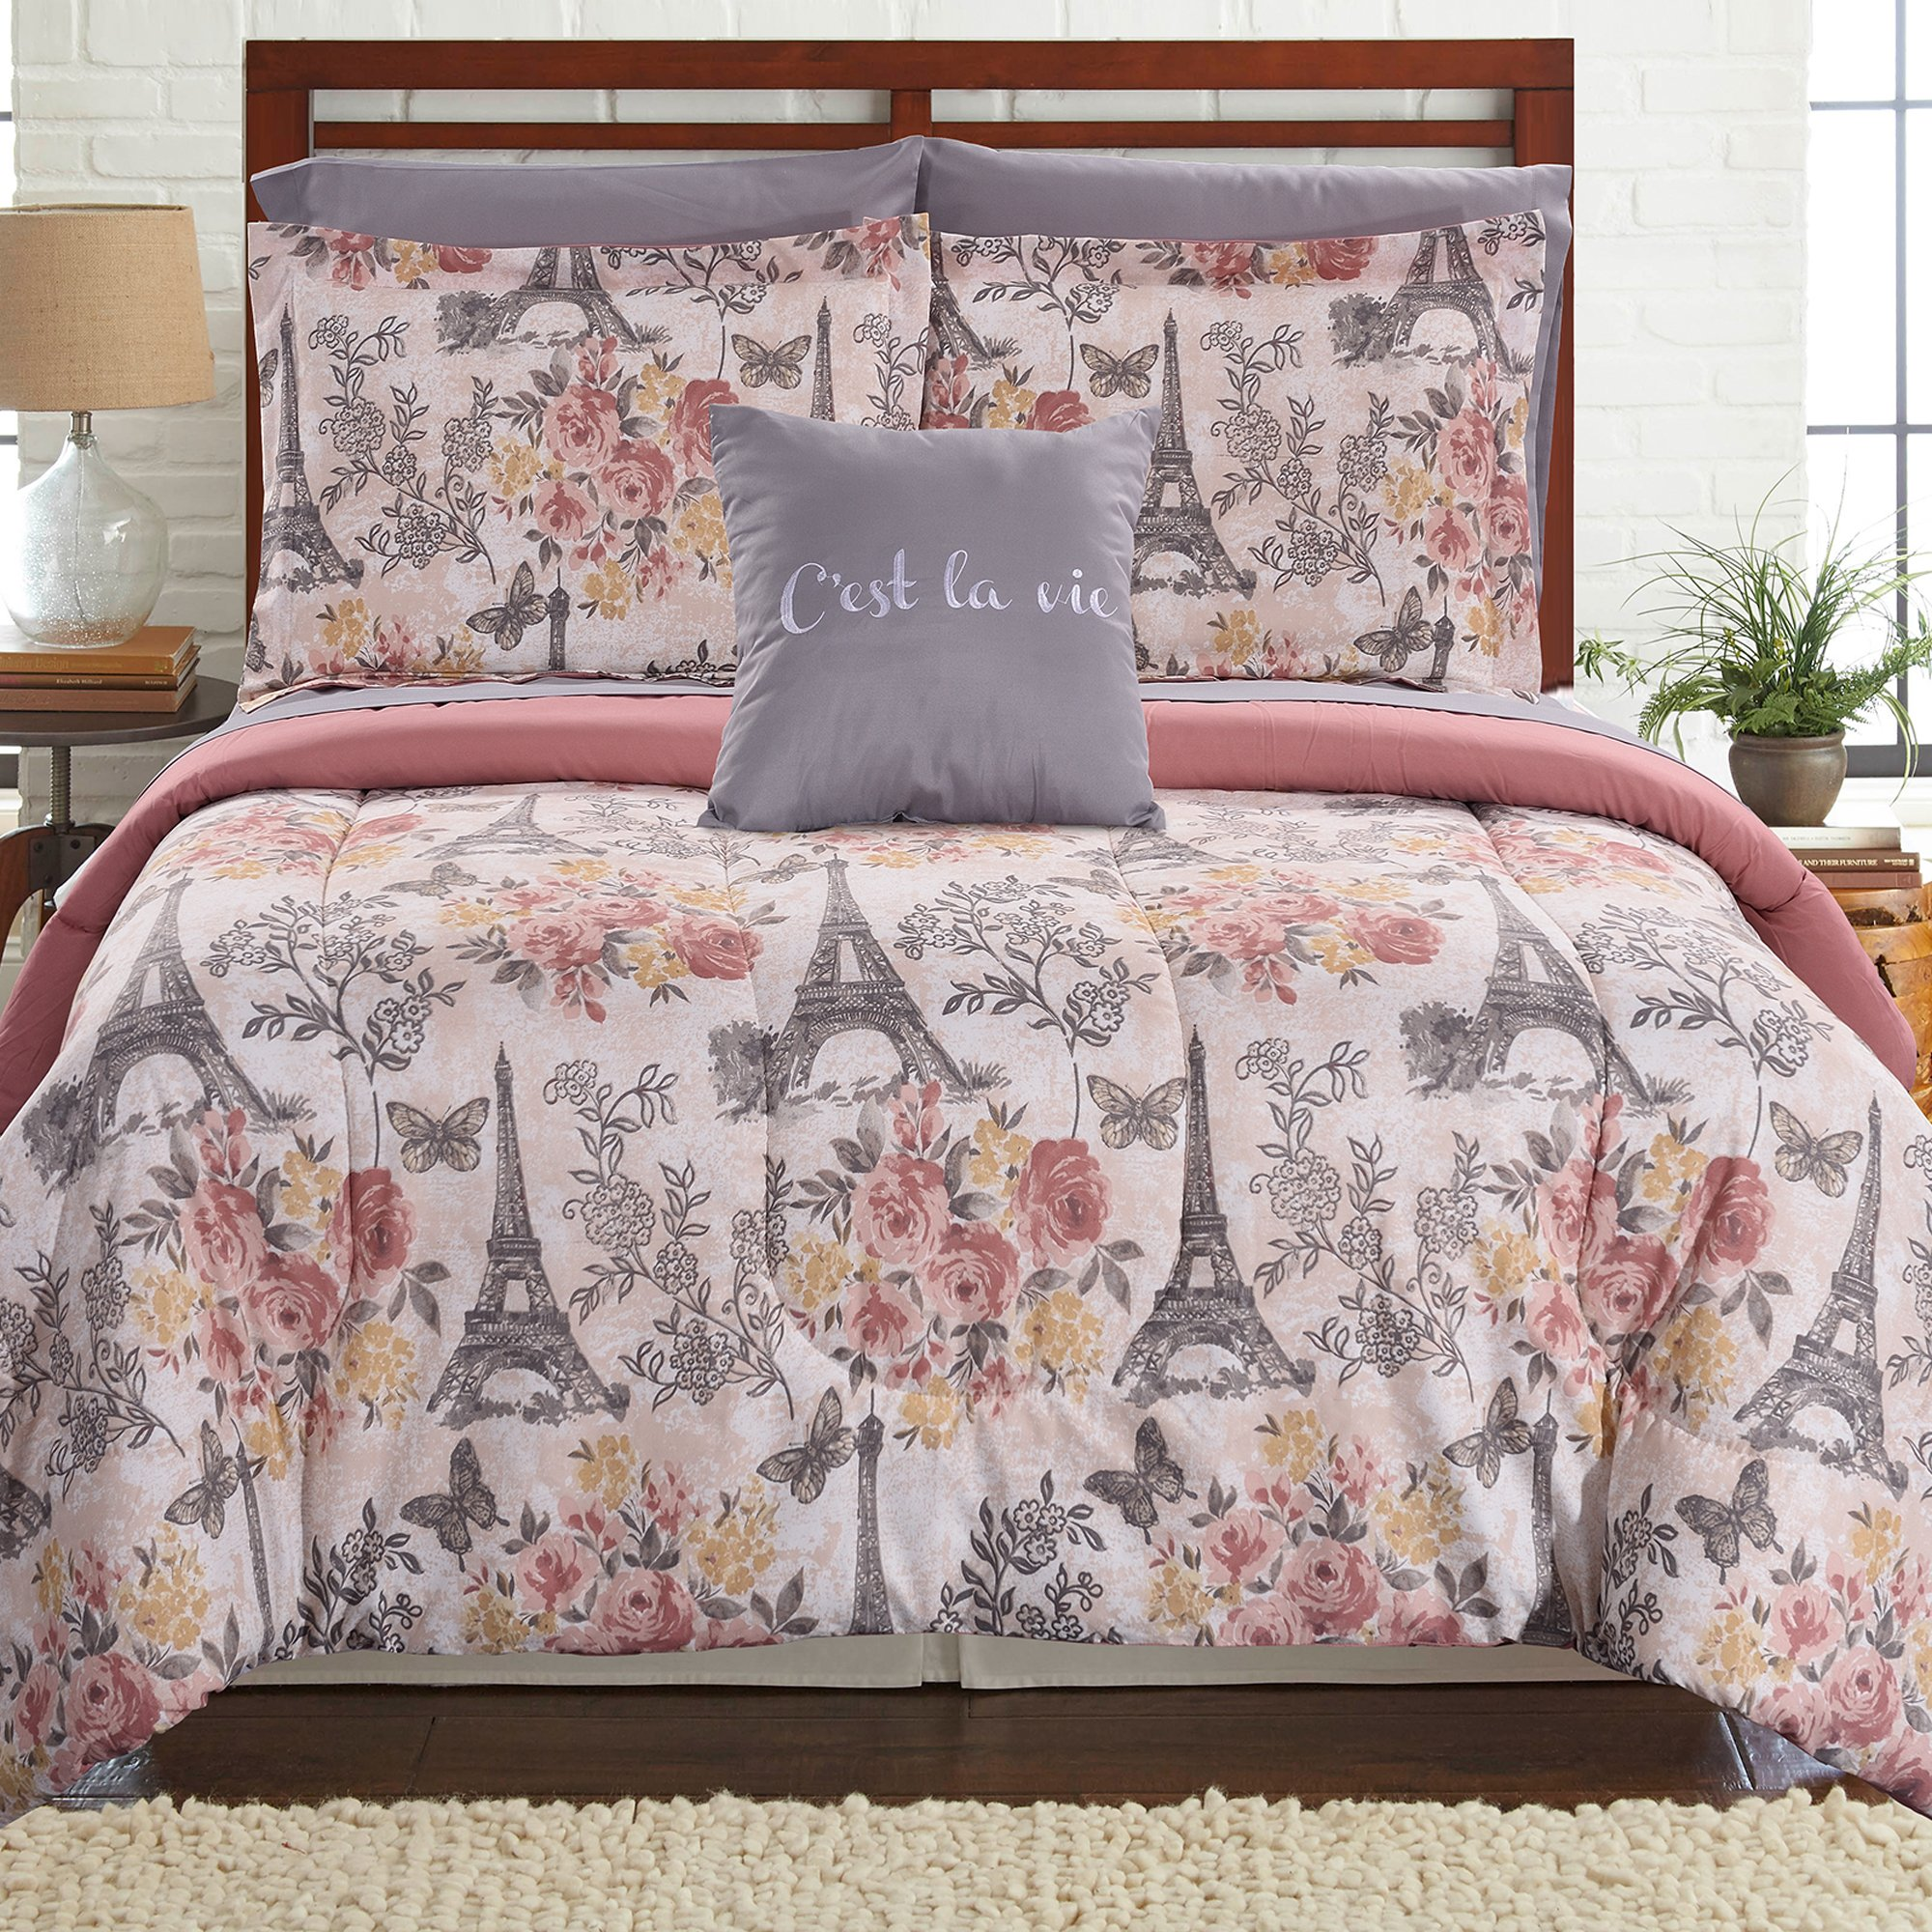 Amrapur Overseas Tuileries Garden 6-Piece Printed Reversible Complete Bed Set